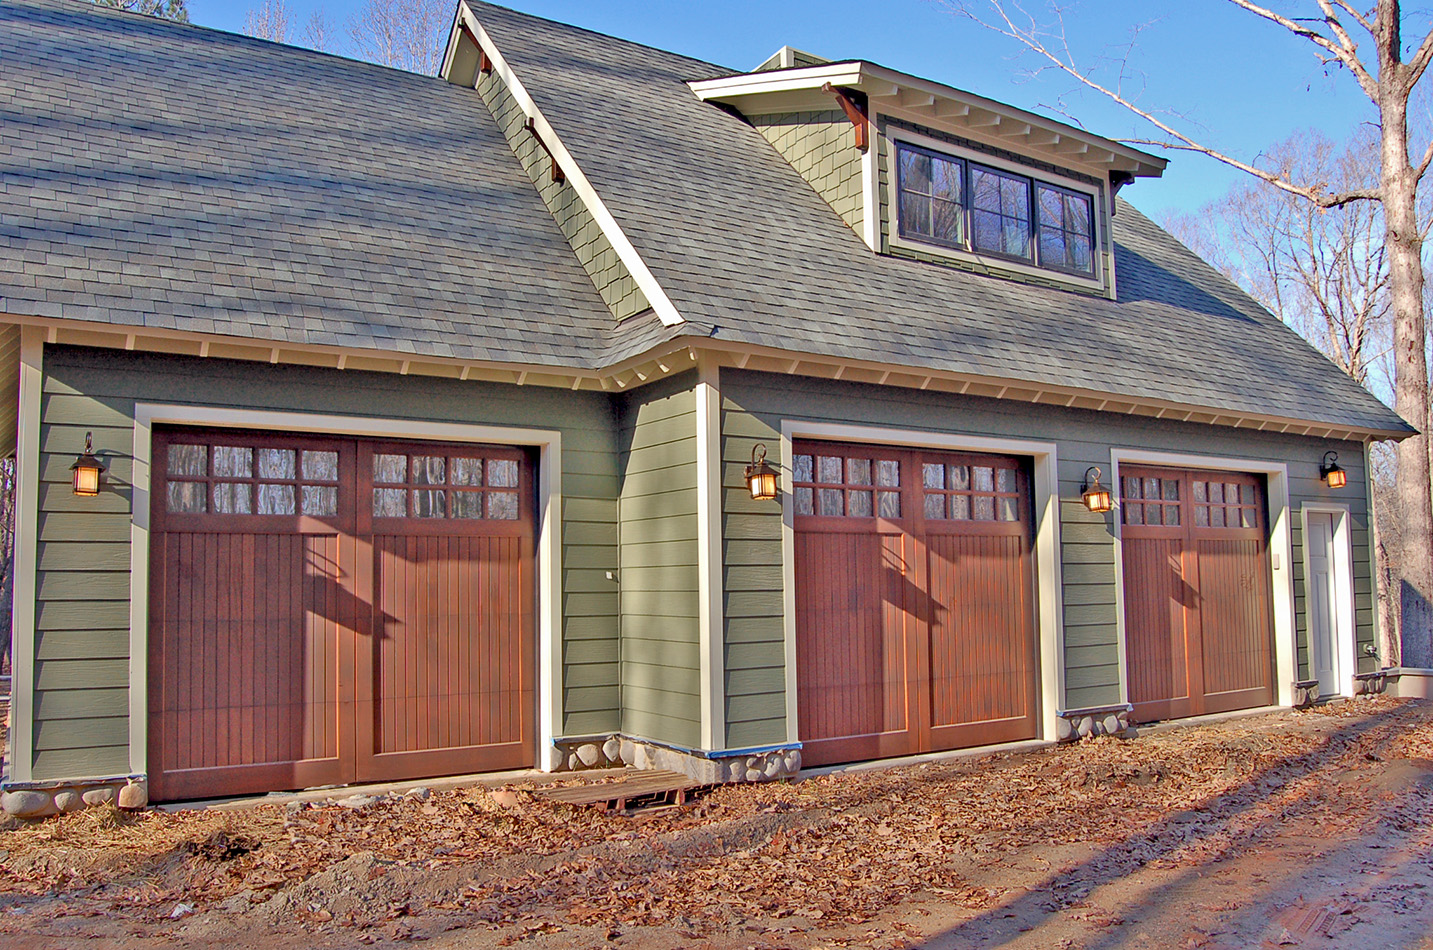 950 #1A67B1 Wooden Garage Doors Craftsman Garage Doors.jpg image Residential Overhead Garage Doors 36731433